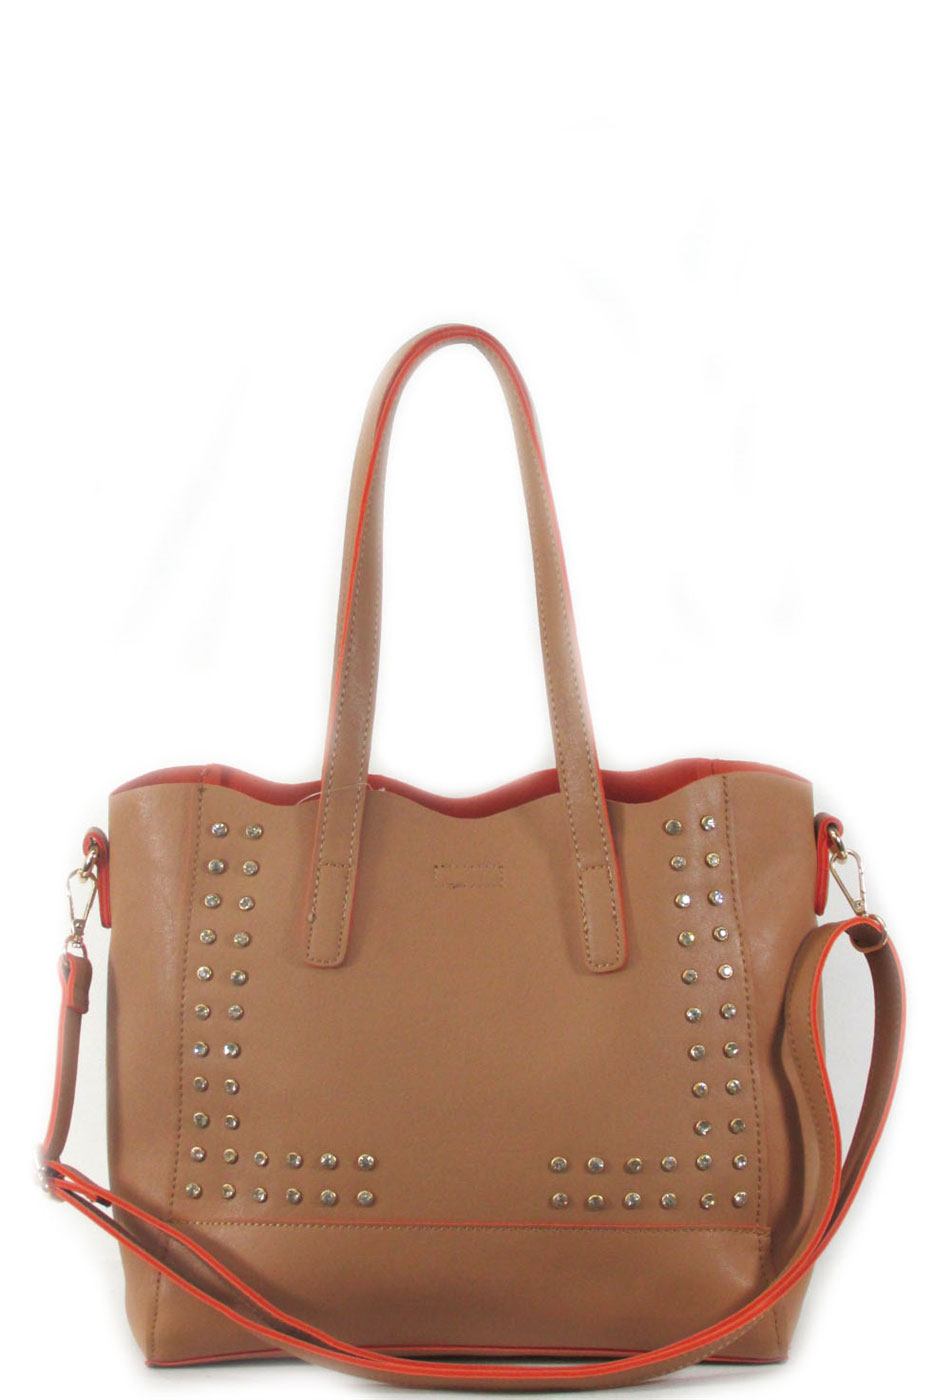 2 in 1 rhinestone bag - orangeshine.com